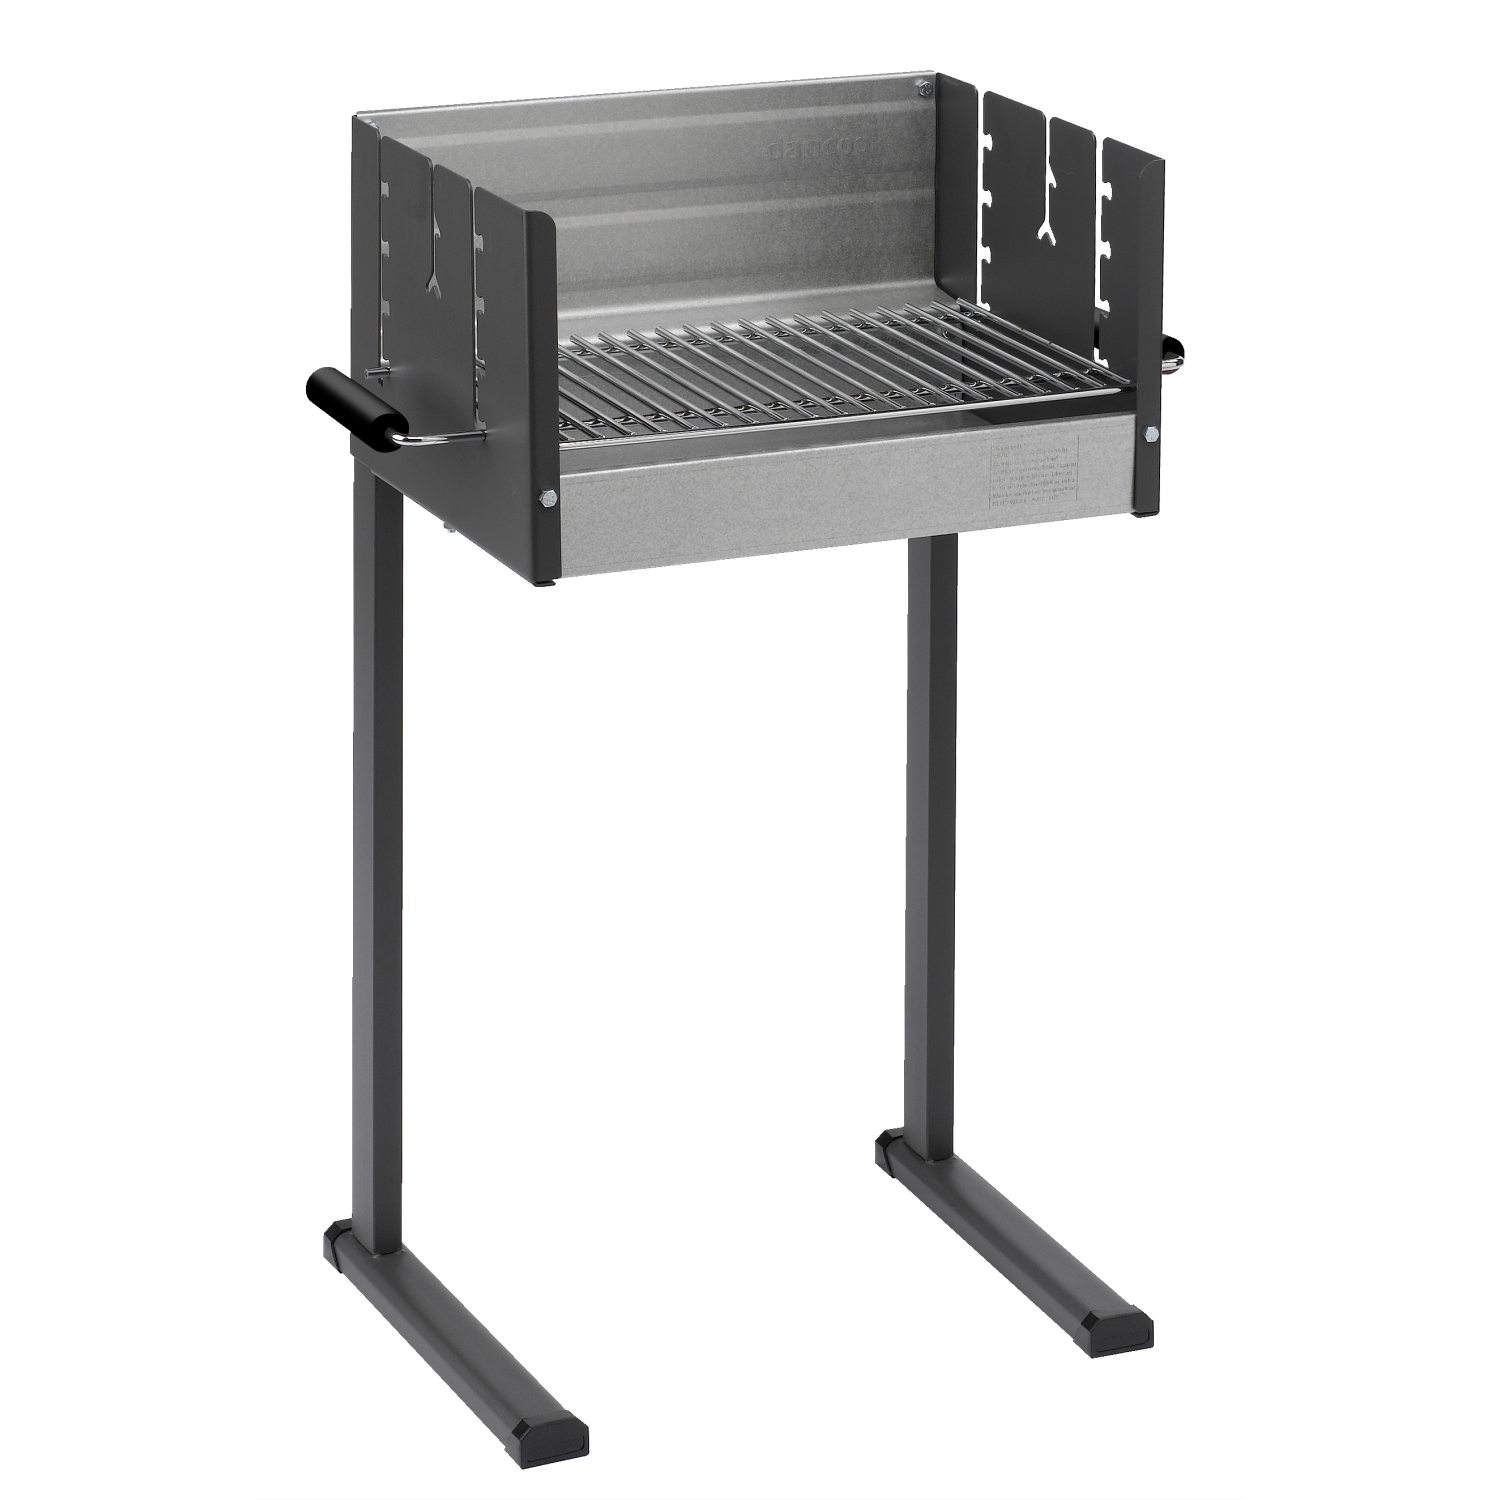 dancook 7000 er en solid men billig kulgrill